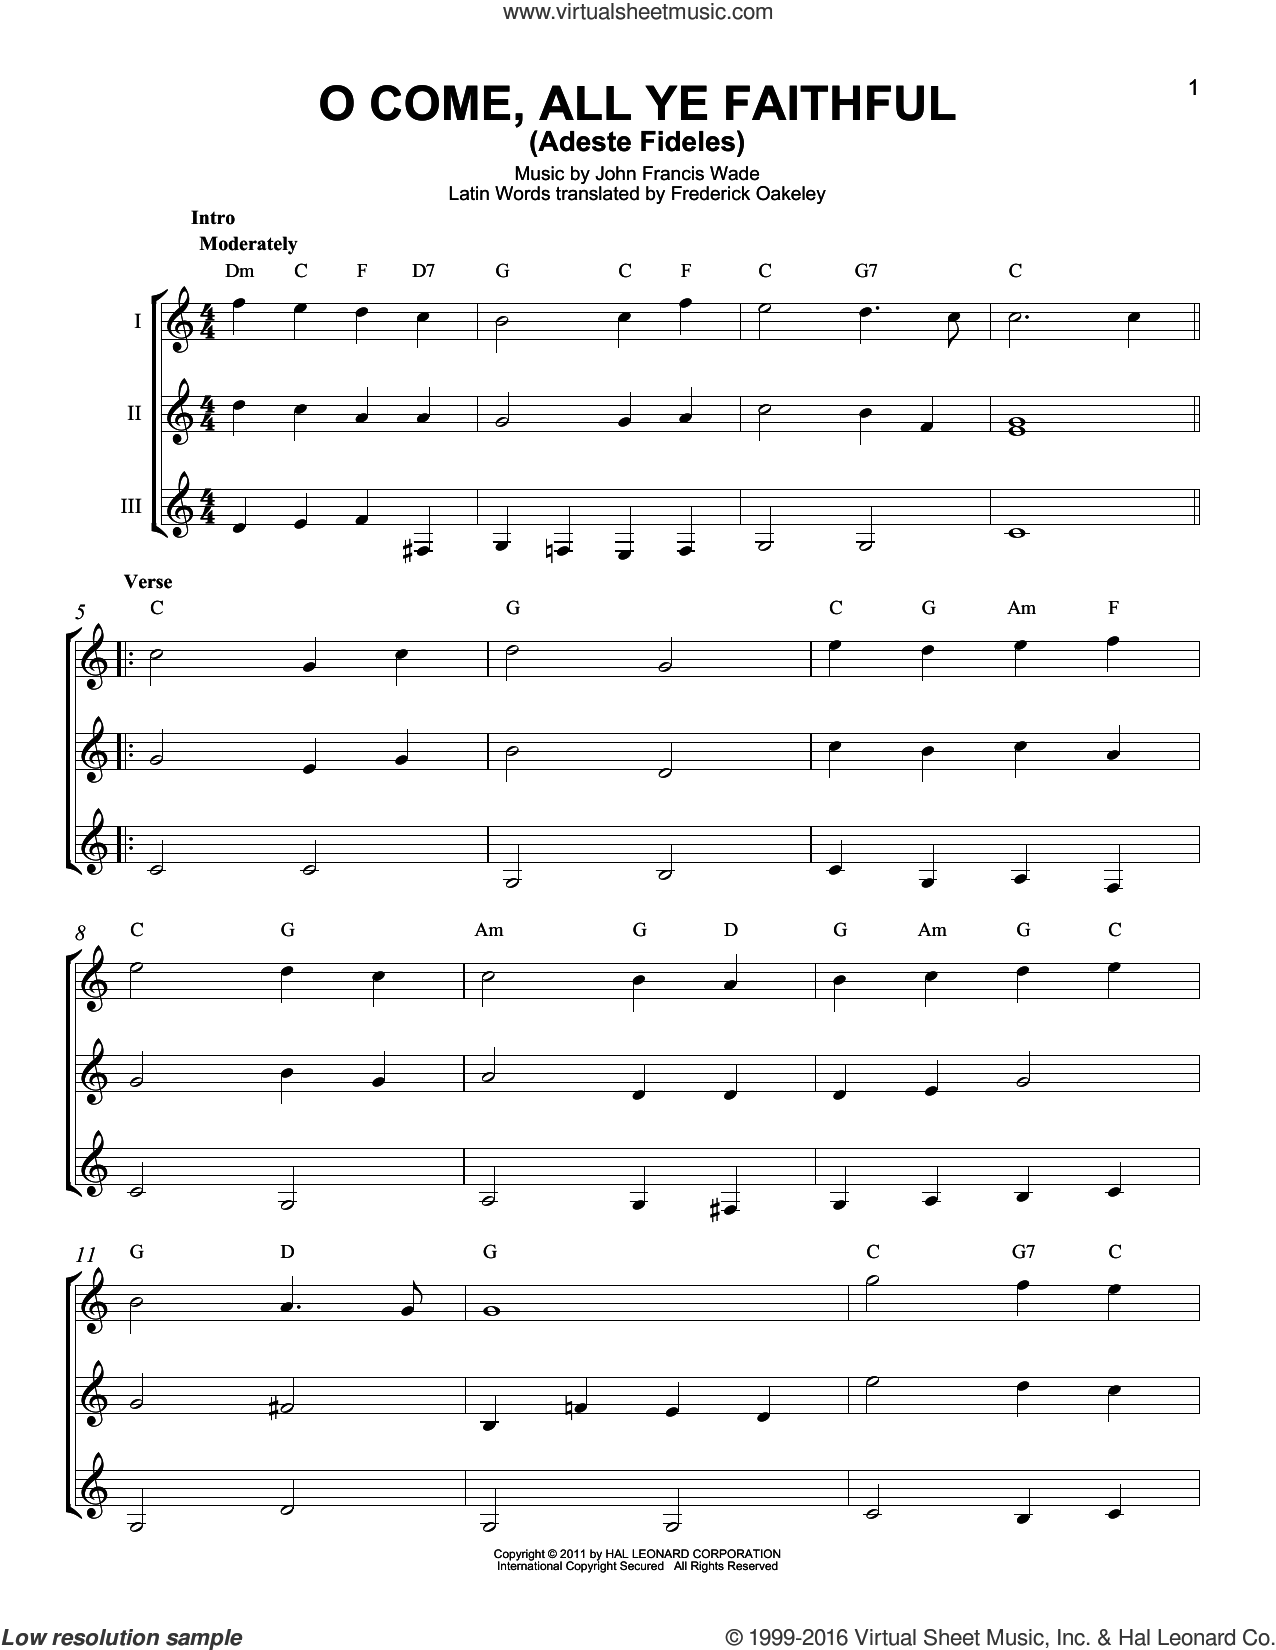 O Come, All Ye Faithful (Adeste Fideles) sheet music for guitar ensemble by John Francis Wade. Score Image Preview.